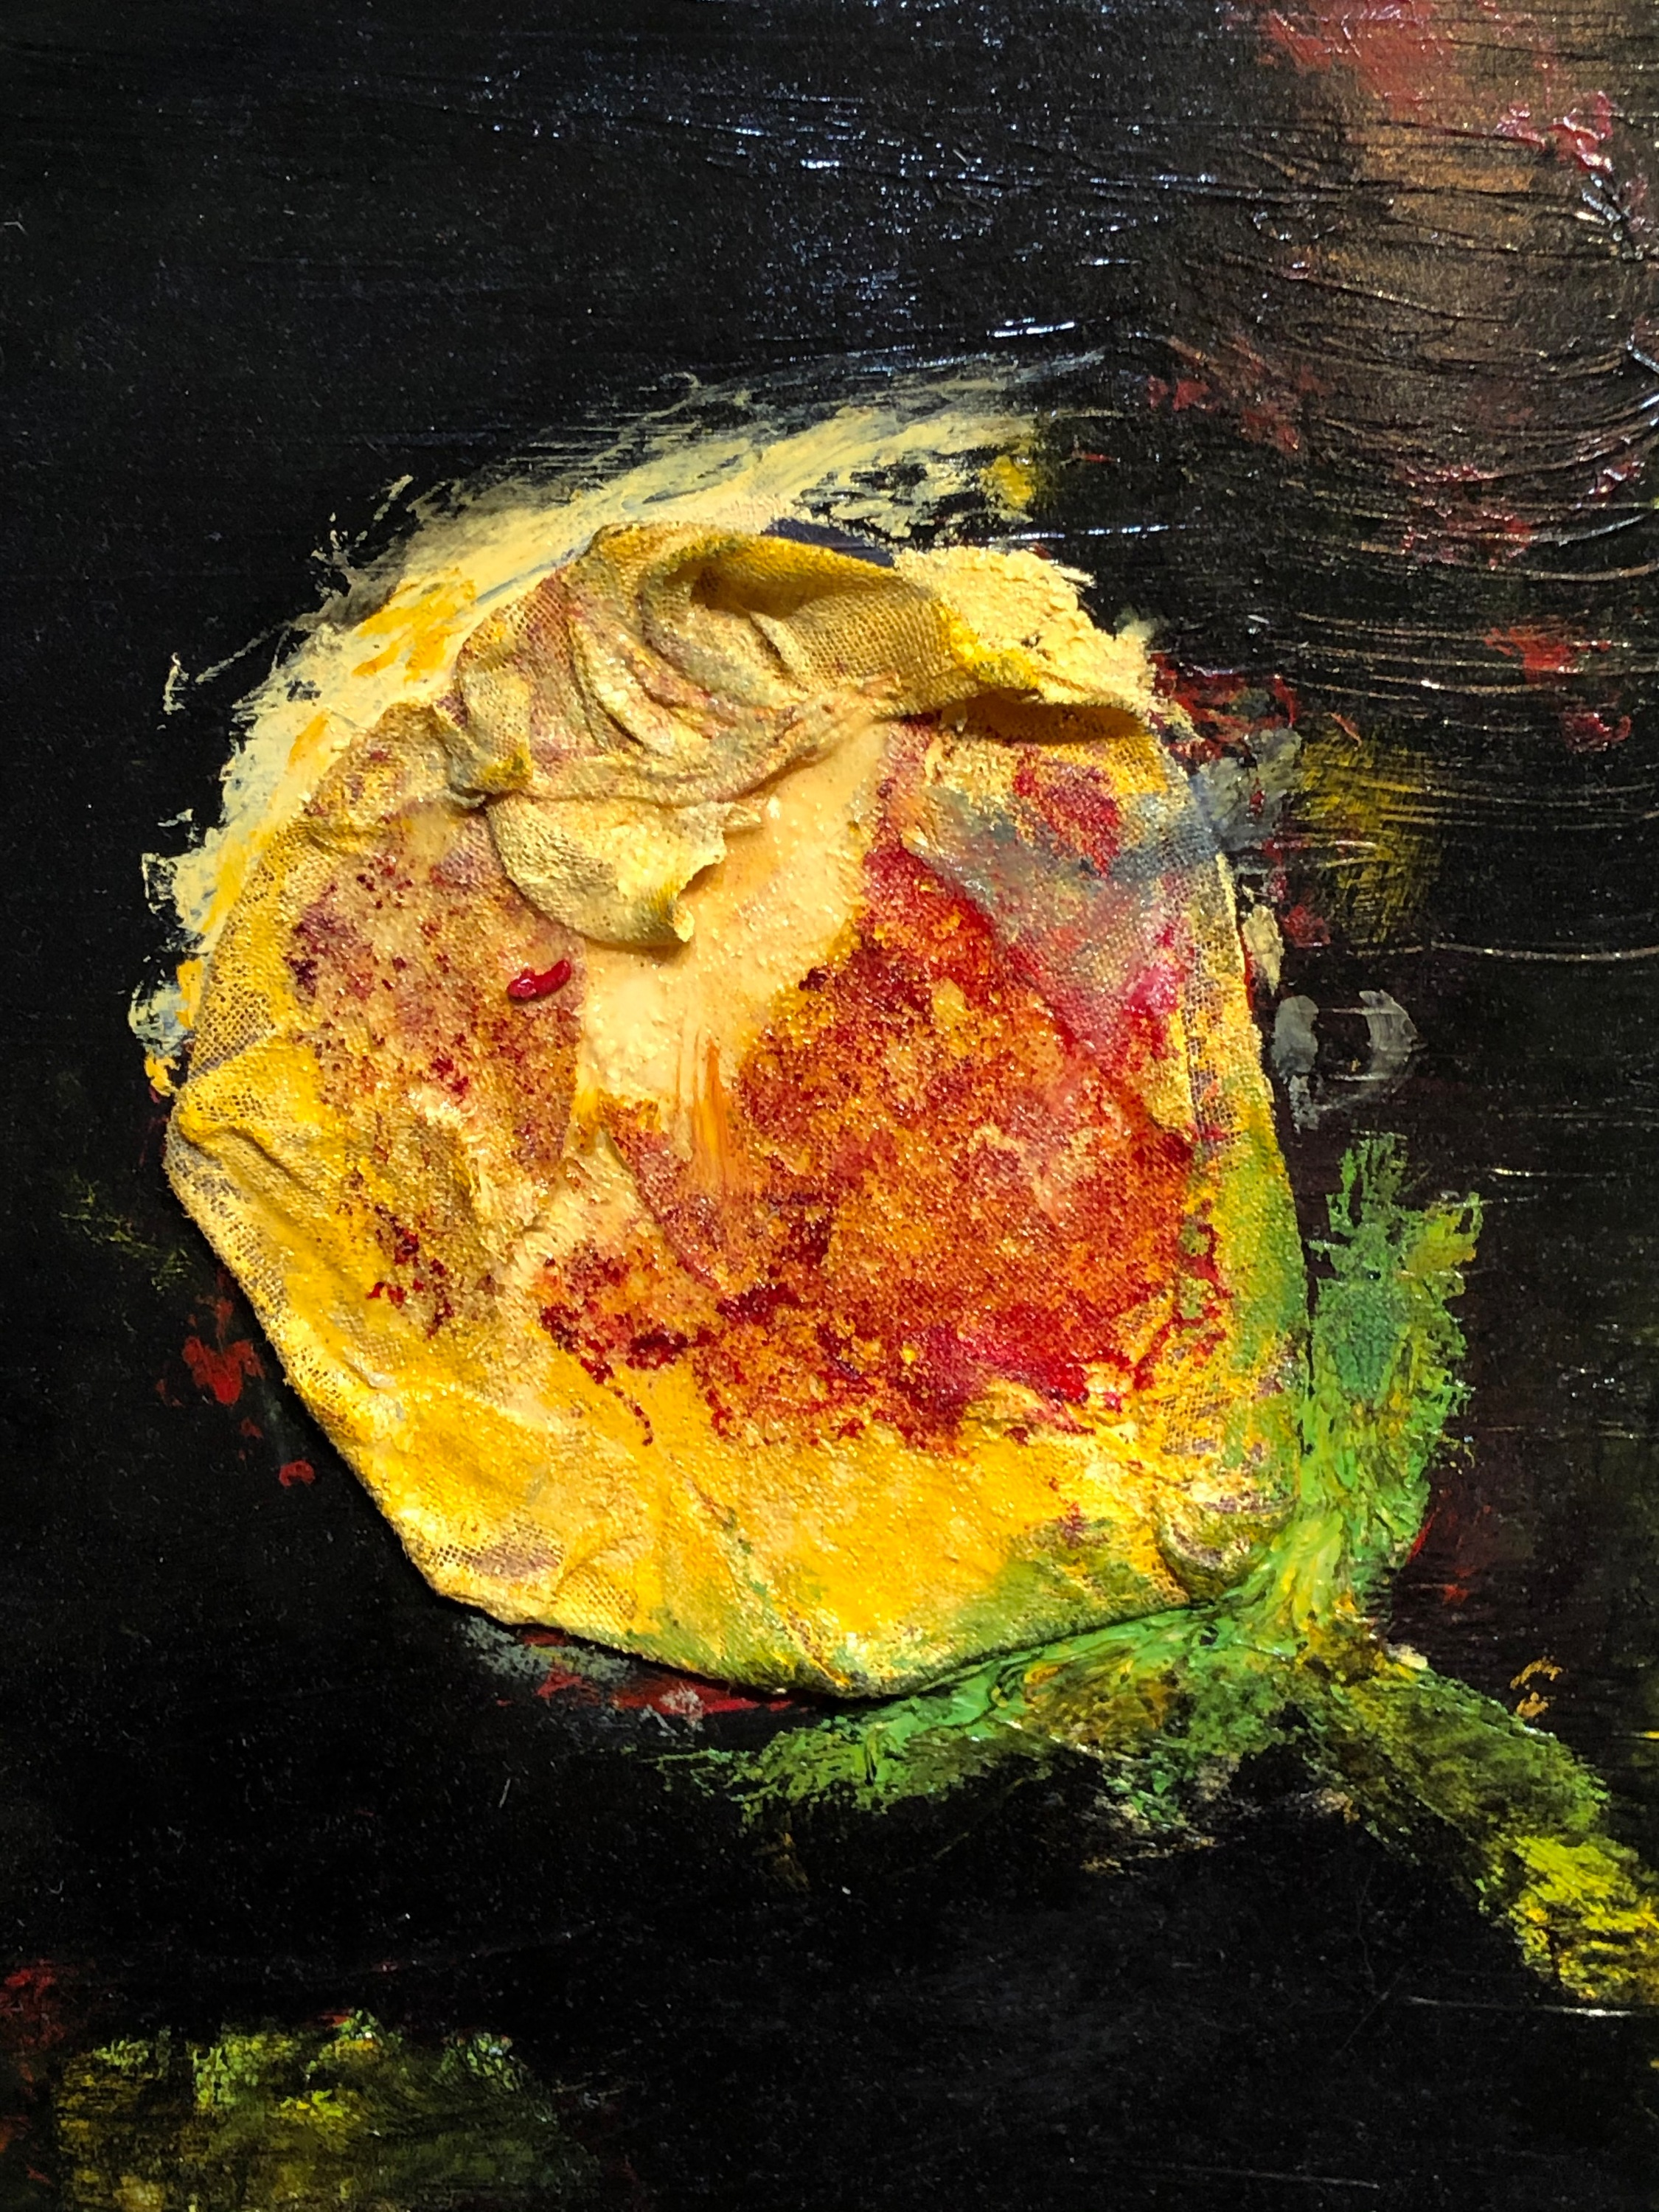 Yellow rose oil wood 12x9 gglx80